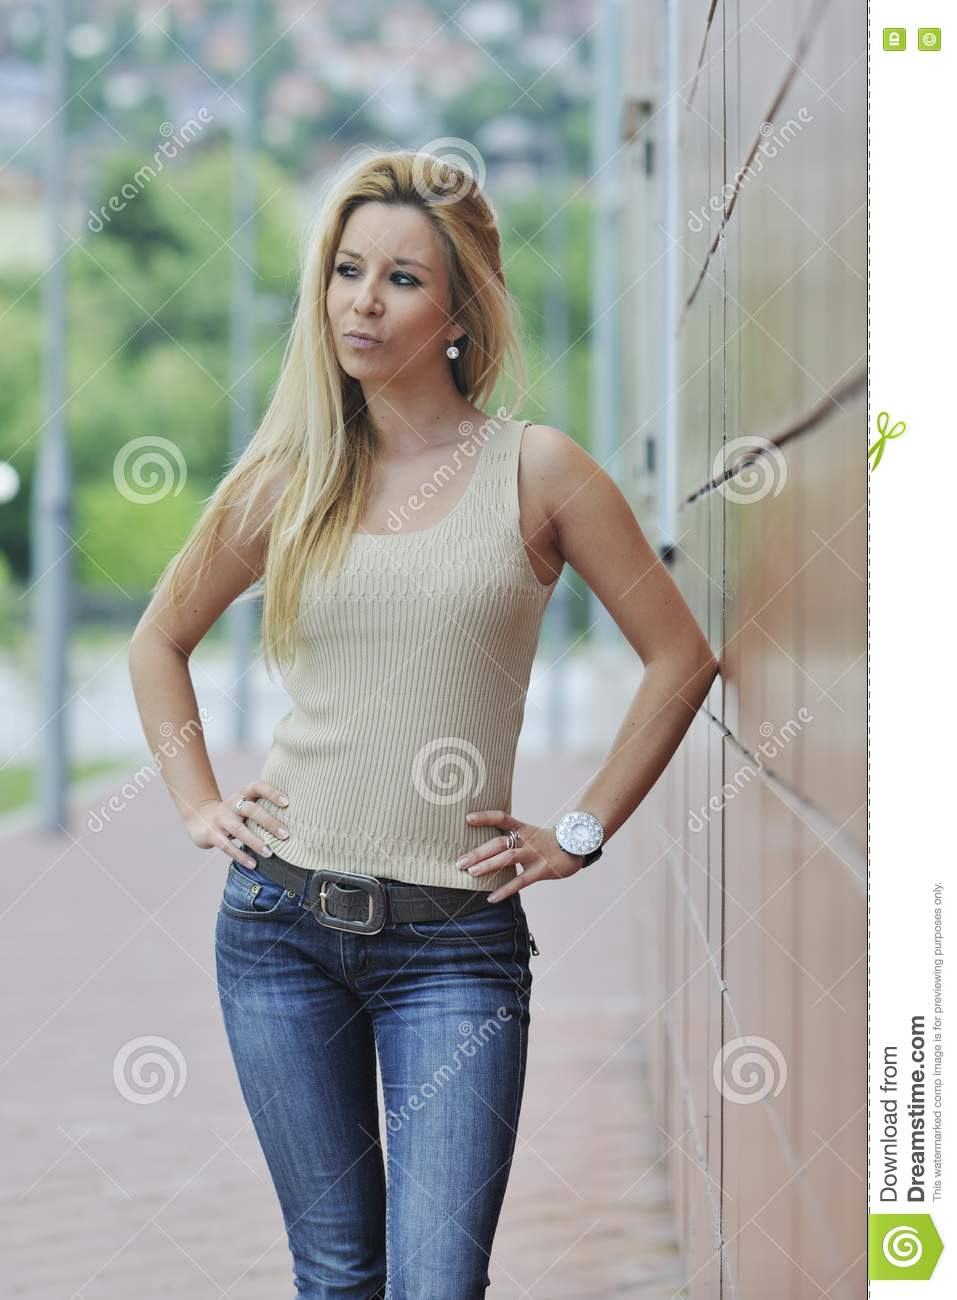 Woman outdoor in casual fashion clothes representing urban style